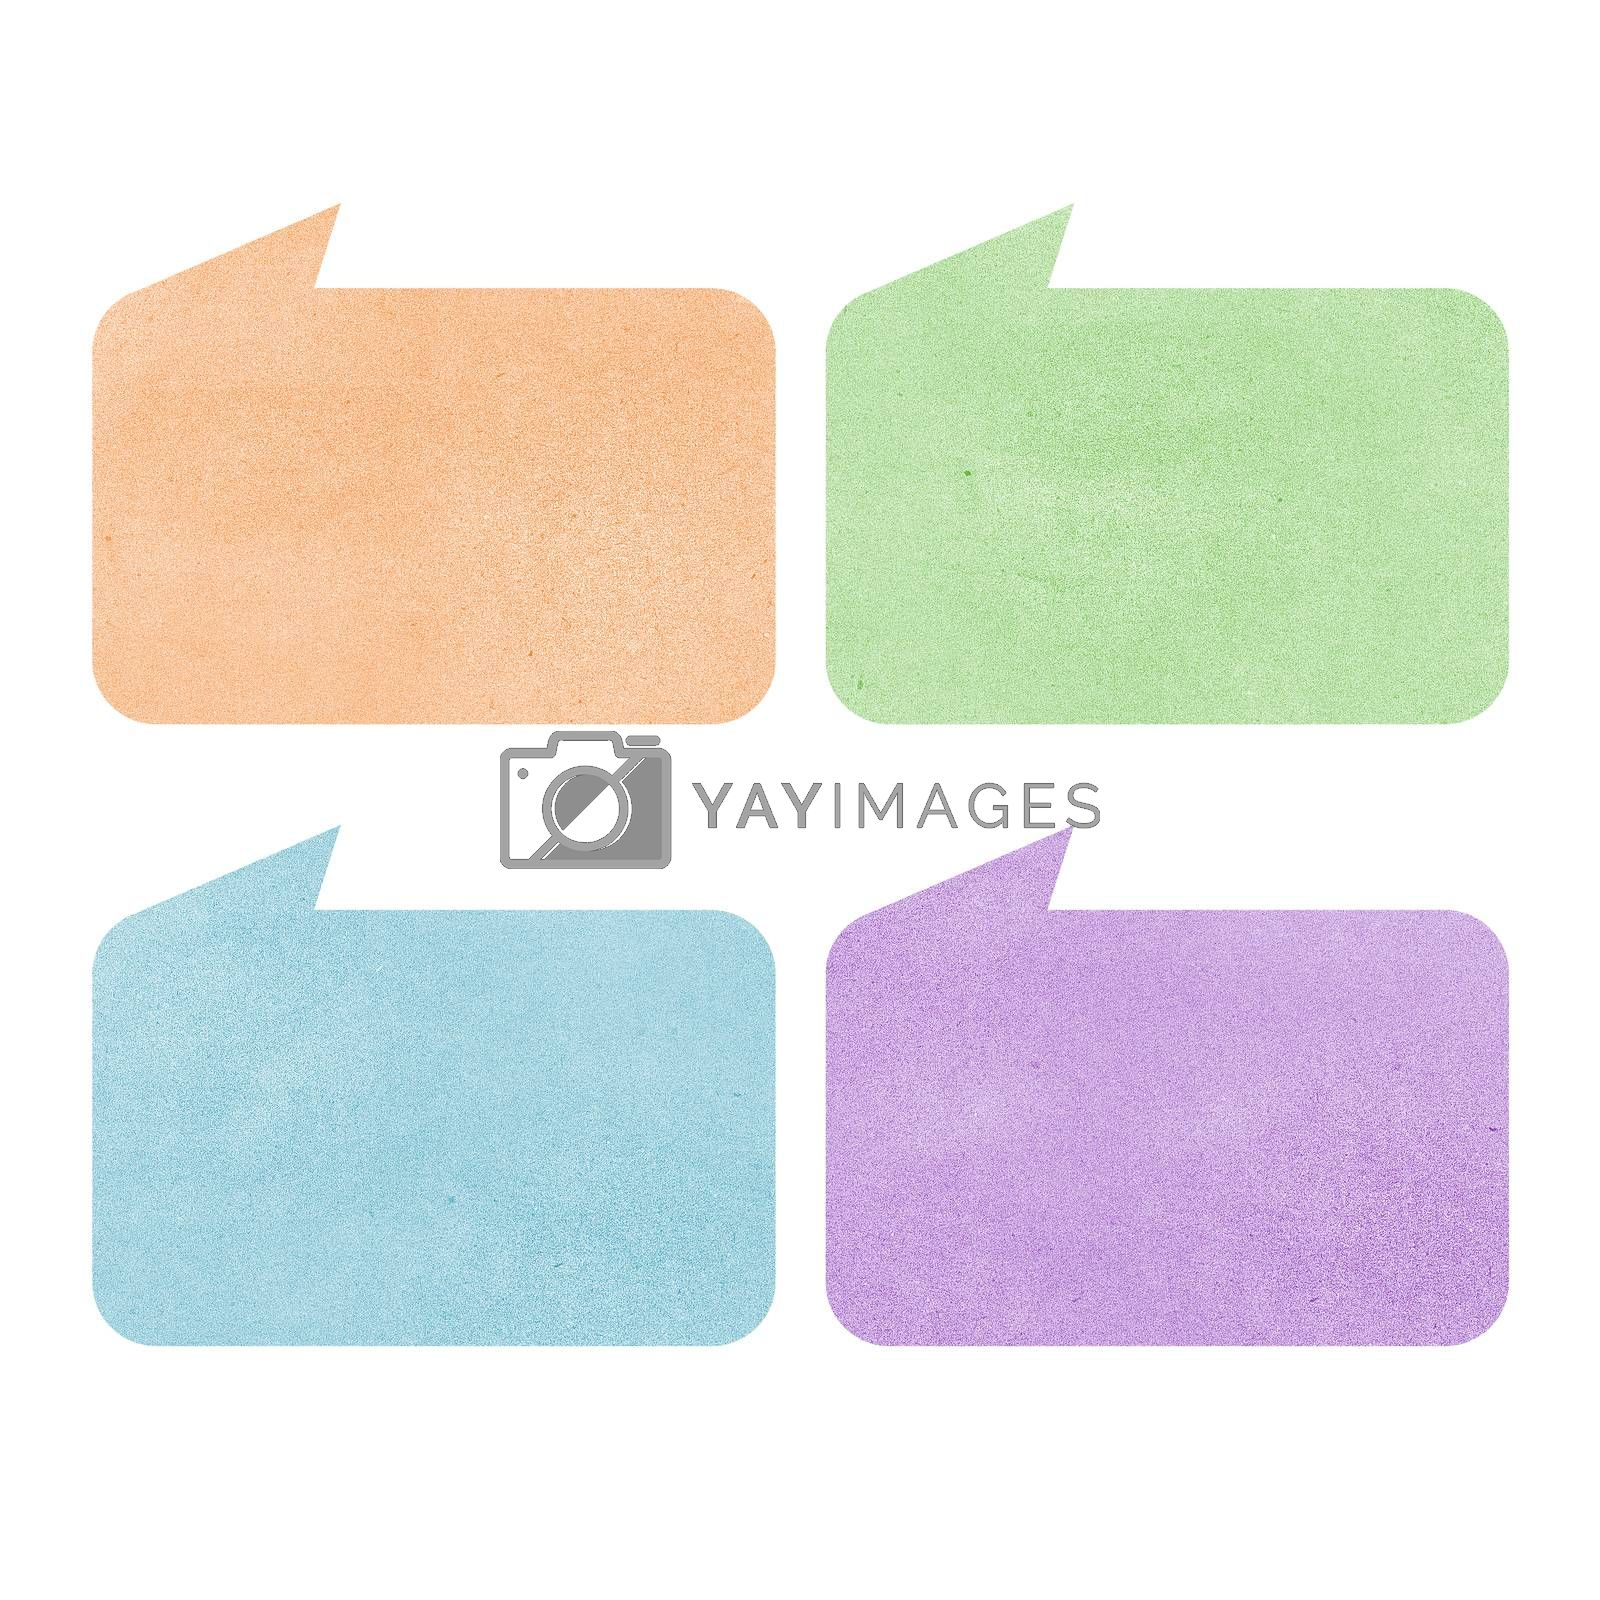 talk tag recycled paper on white background by jakgree